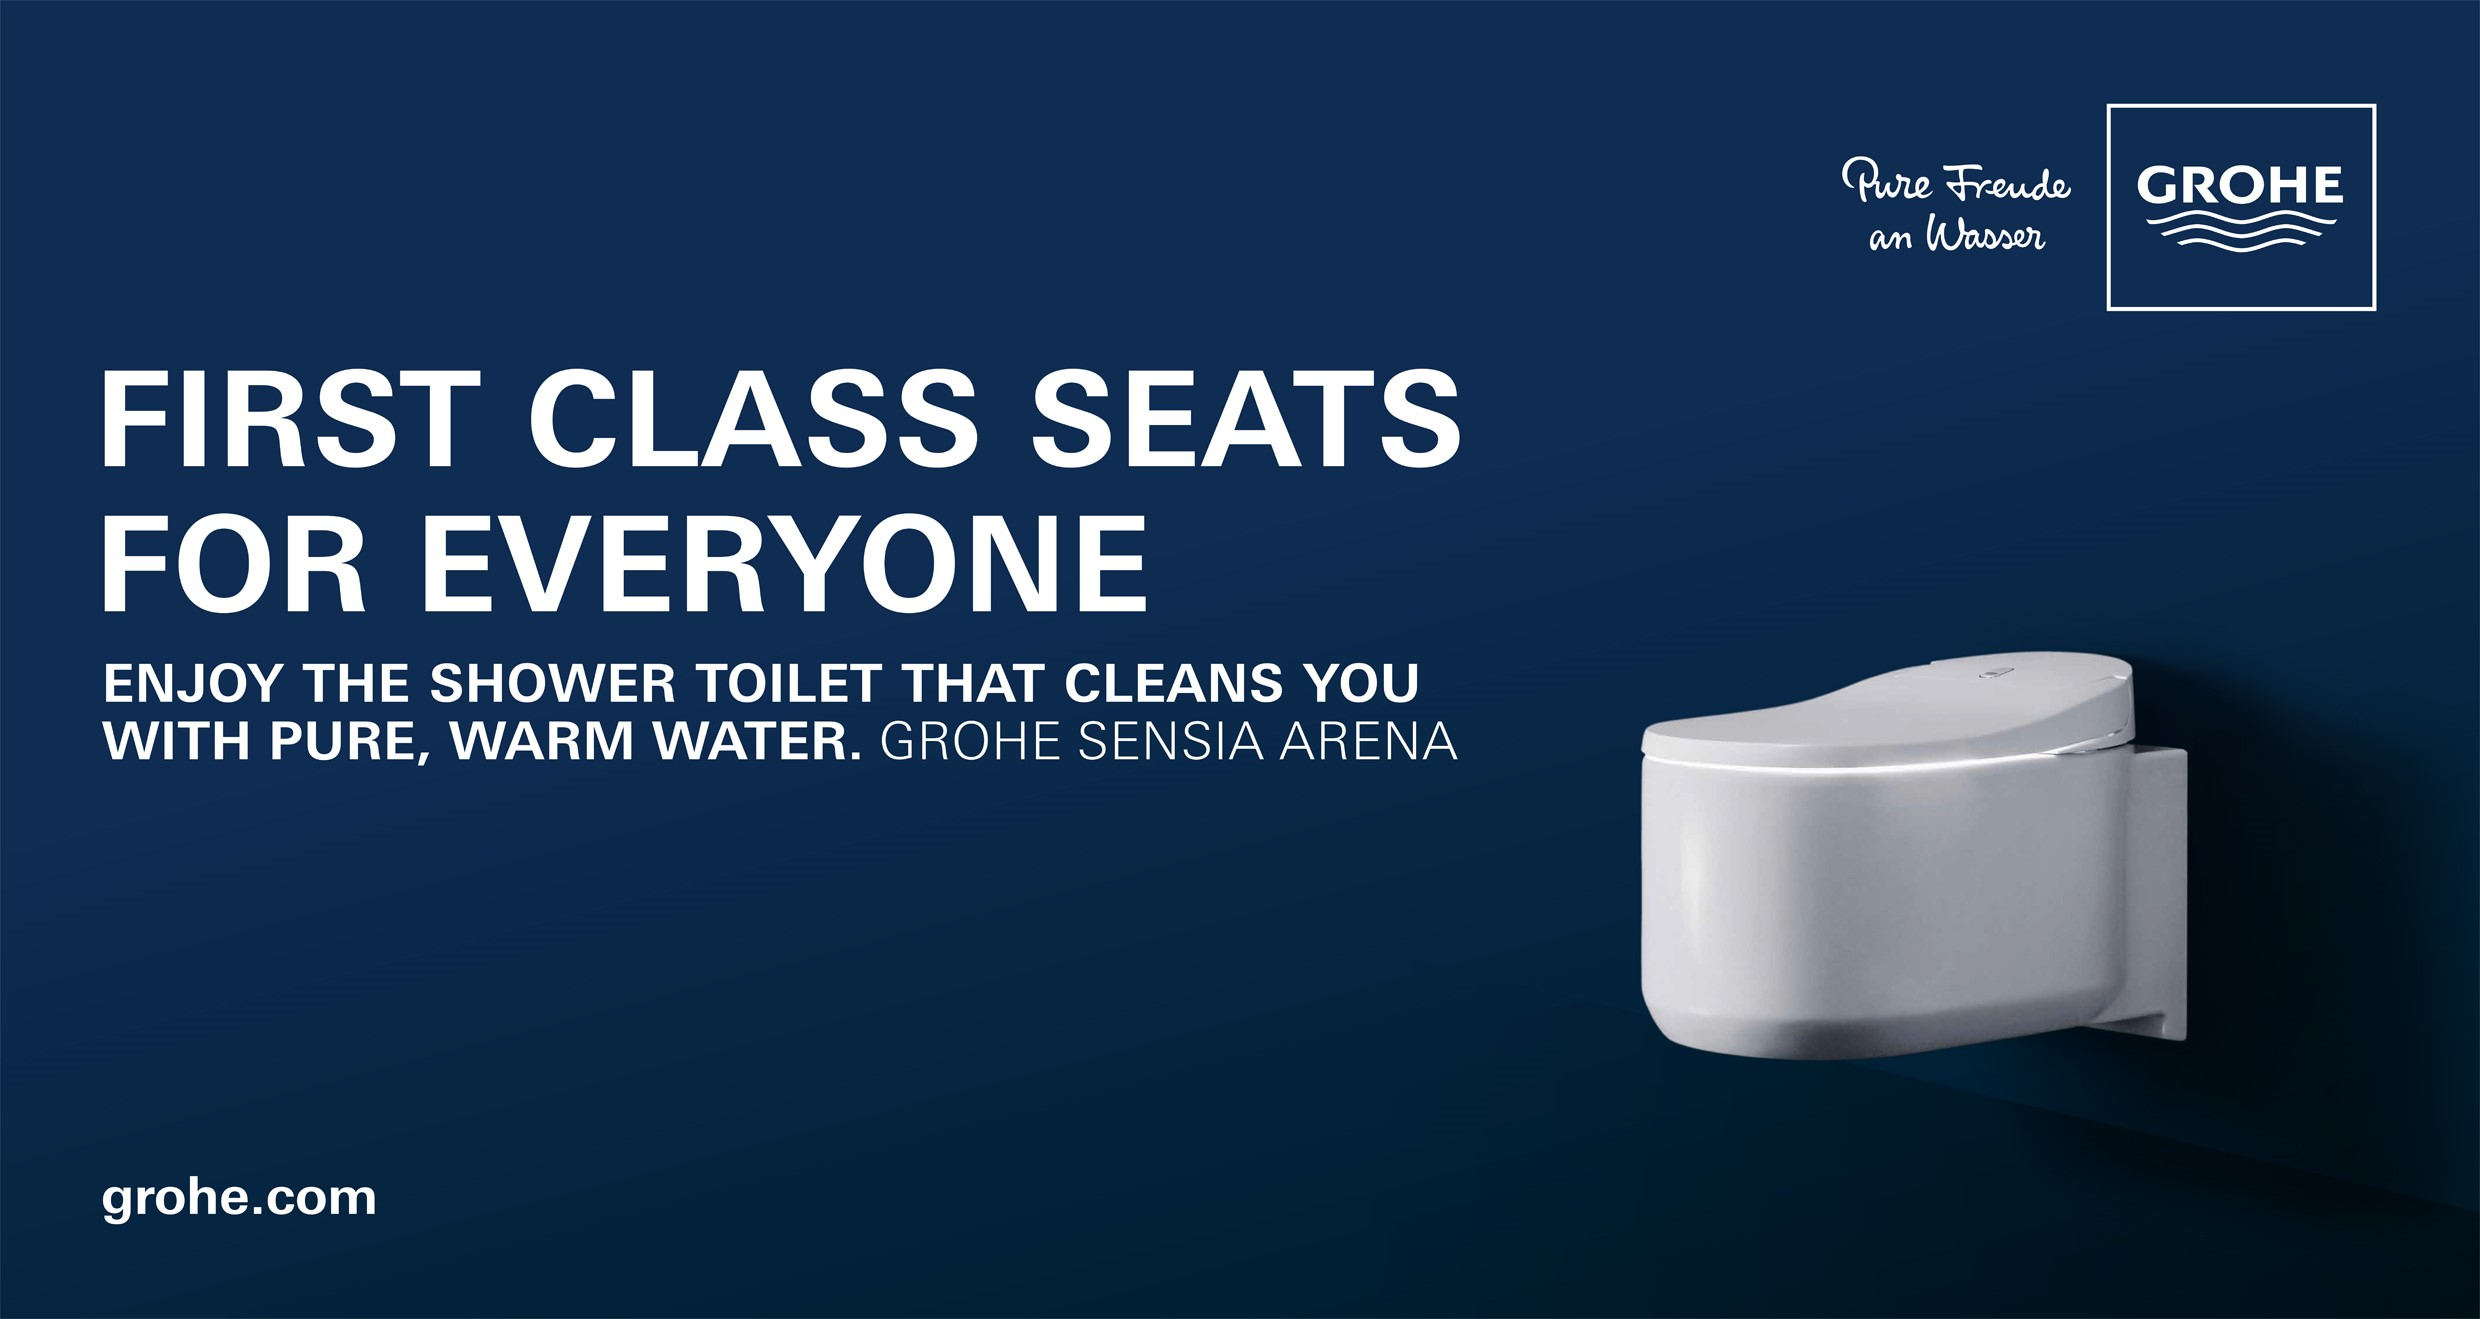 Grohe. Beautiful No Other Grohe Product Has Won As Many Design ...